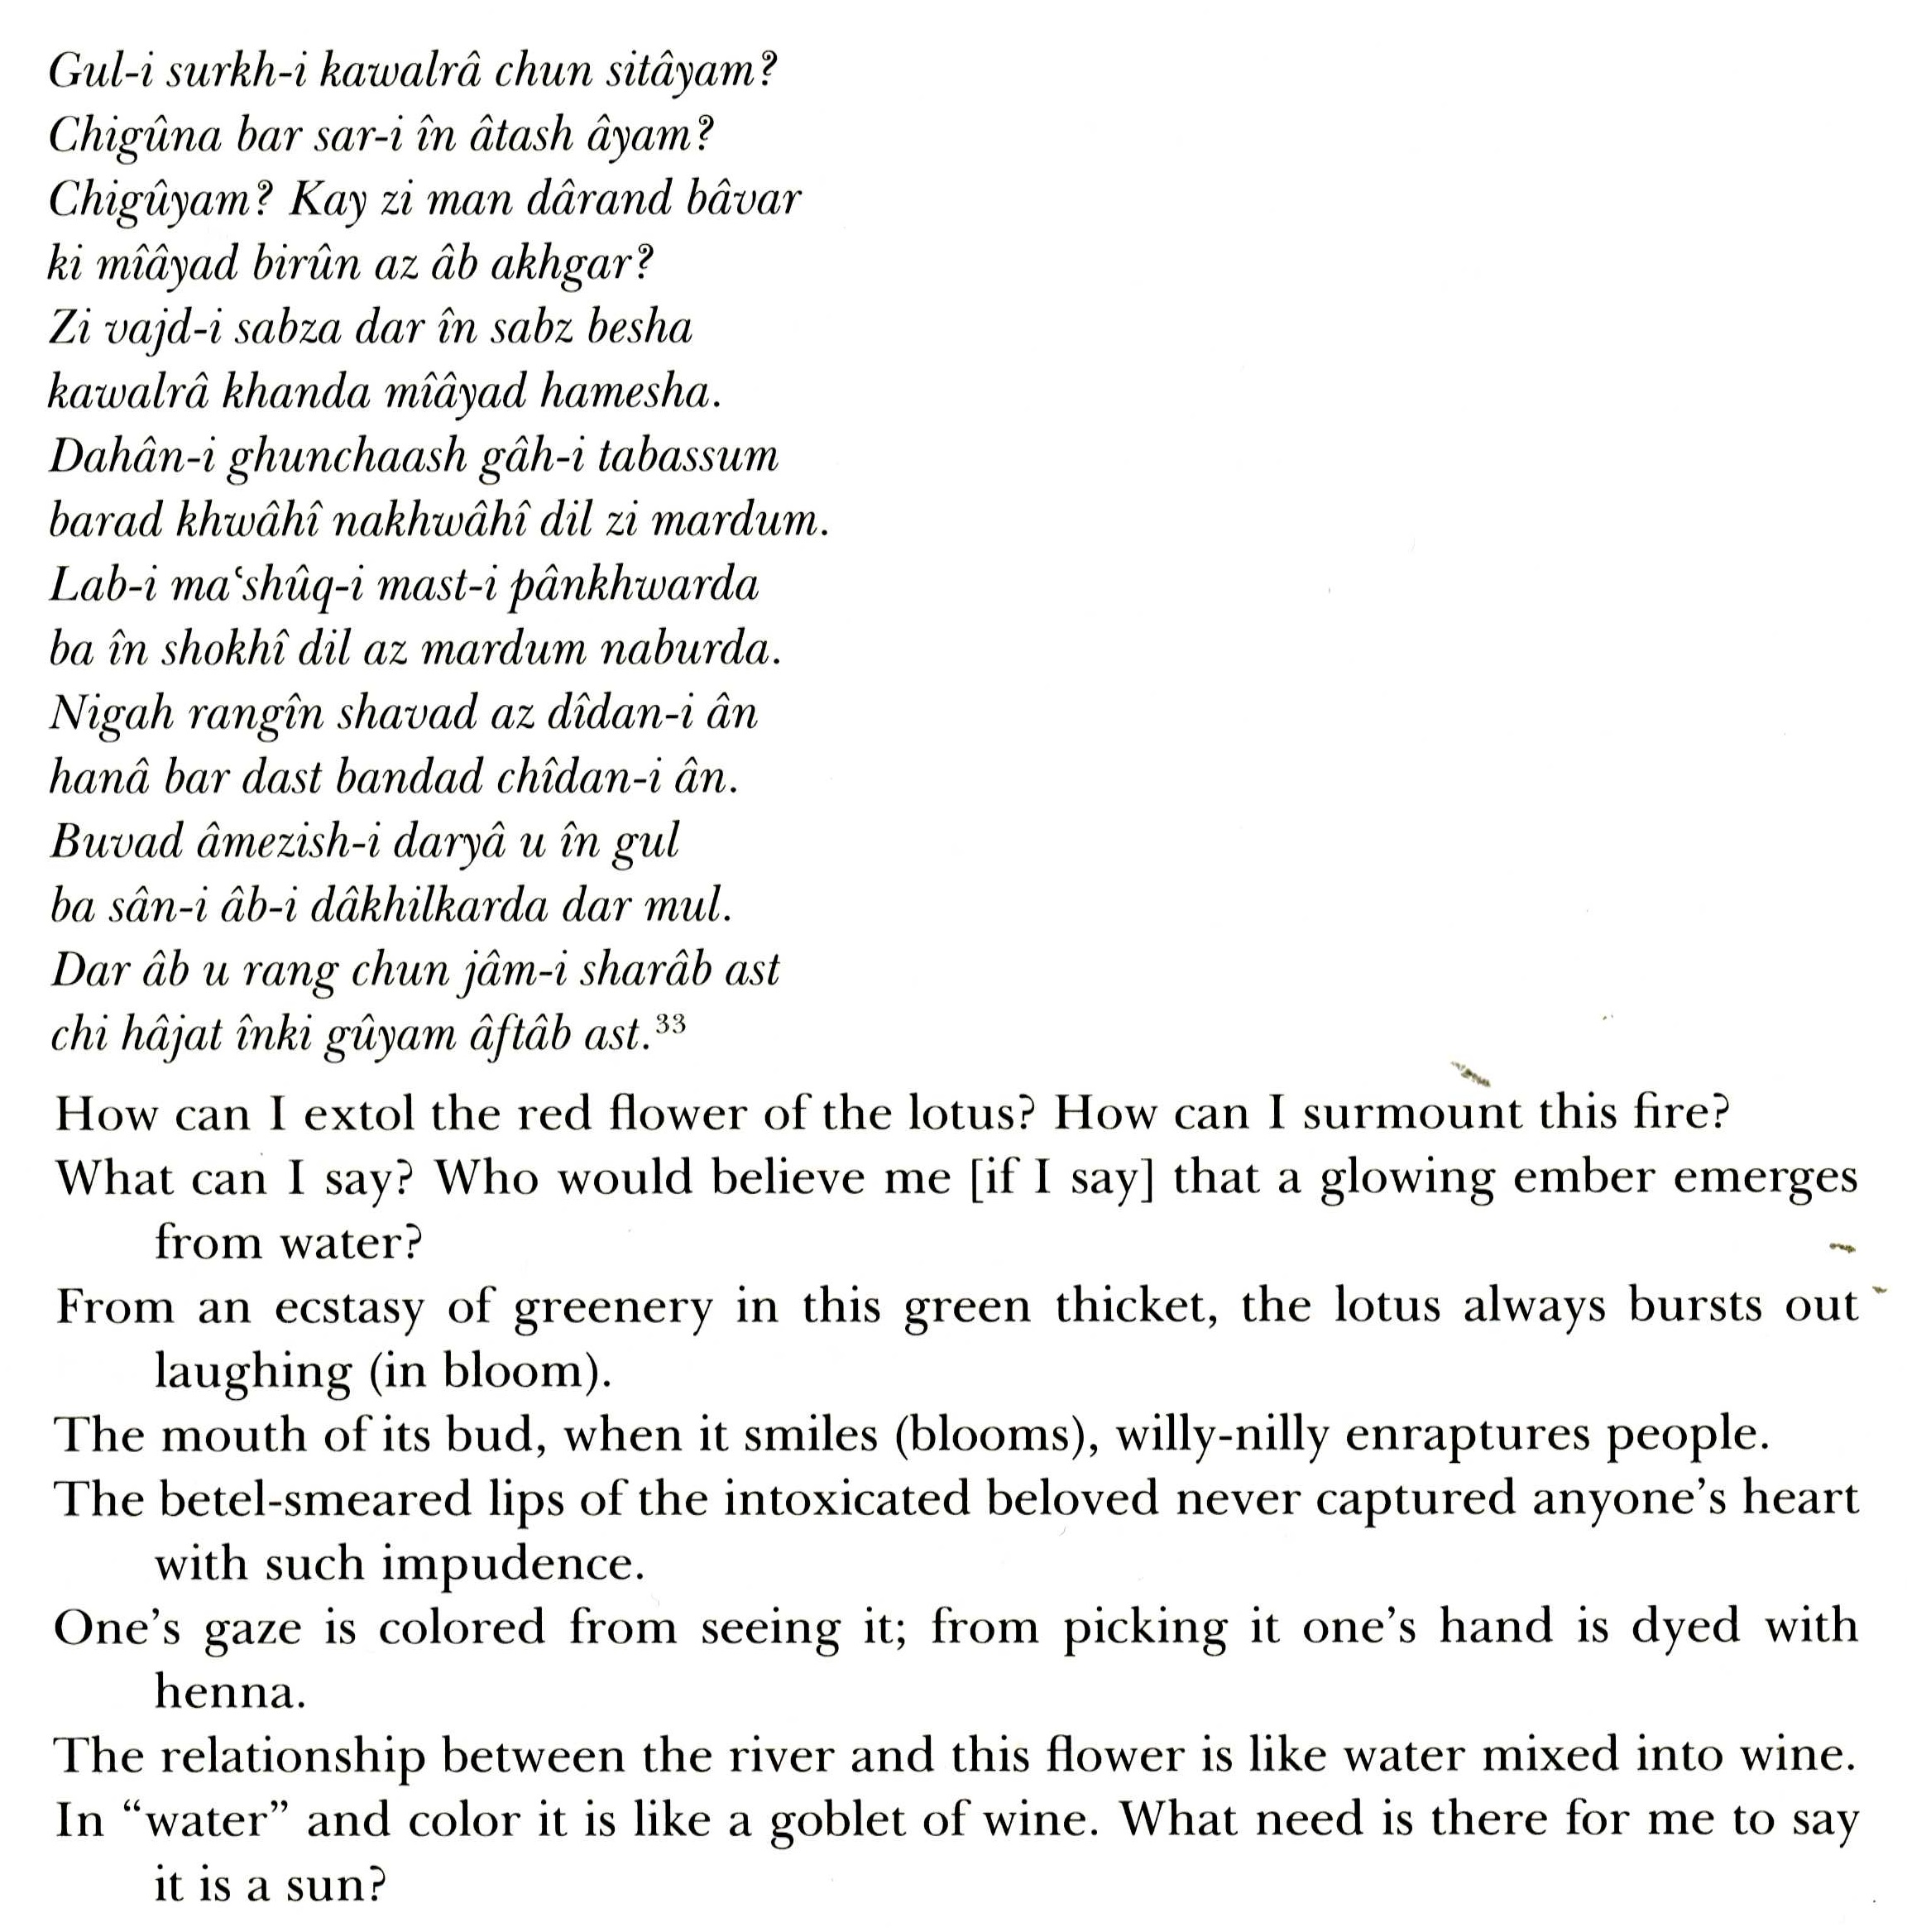 a review of the popular and important poem the aeneid Translations of the aeneid have, in fact, inaugurated major literary movements  now seems a good time to review the history of this very roman poem in english   nahum tate, who wrote the libretto, is otherwise famous for.